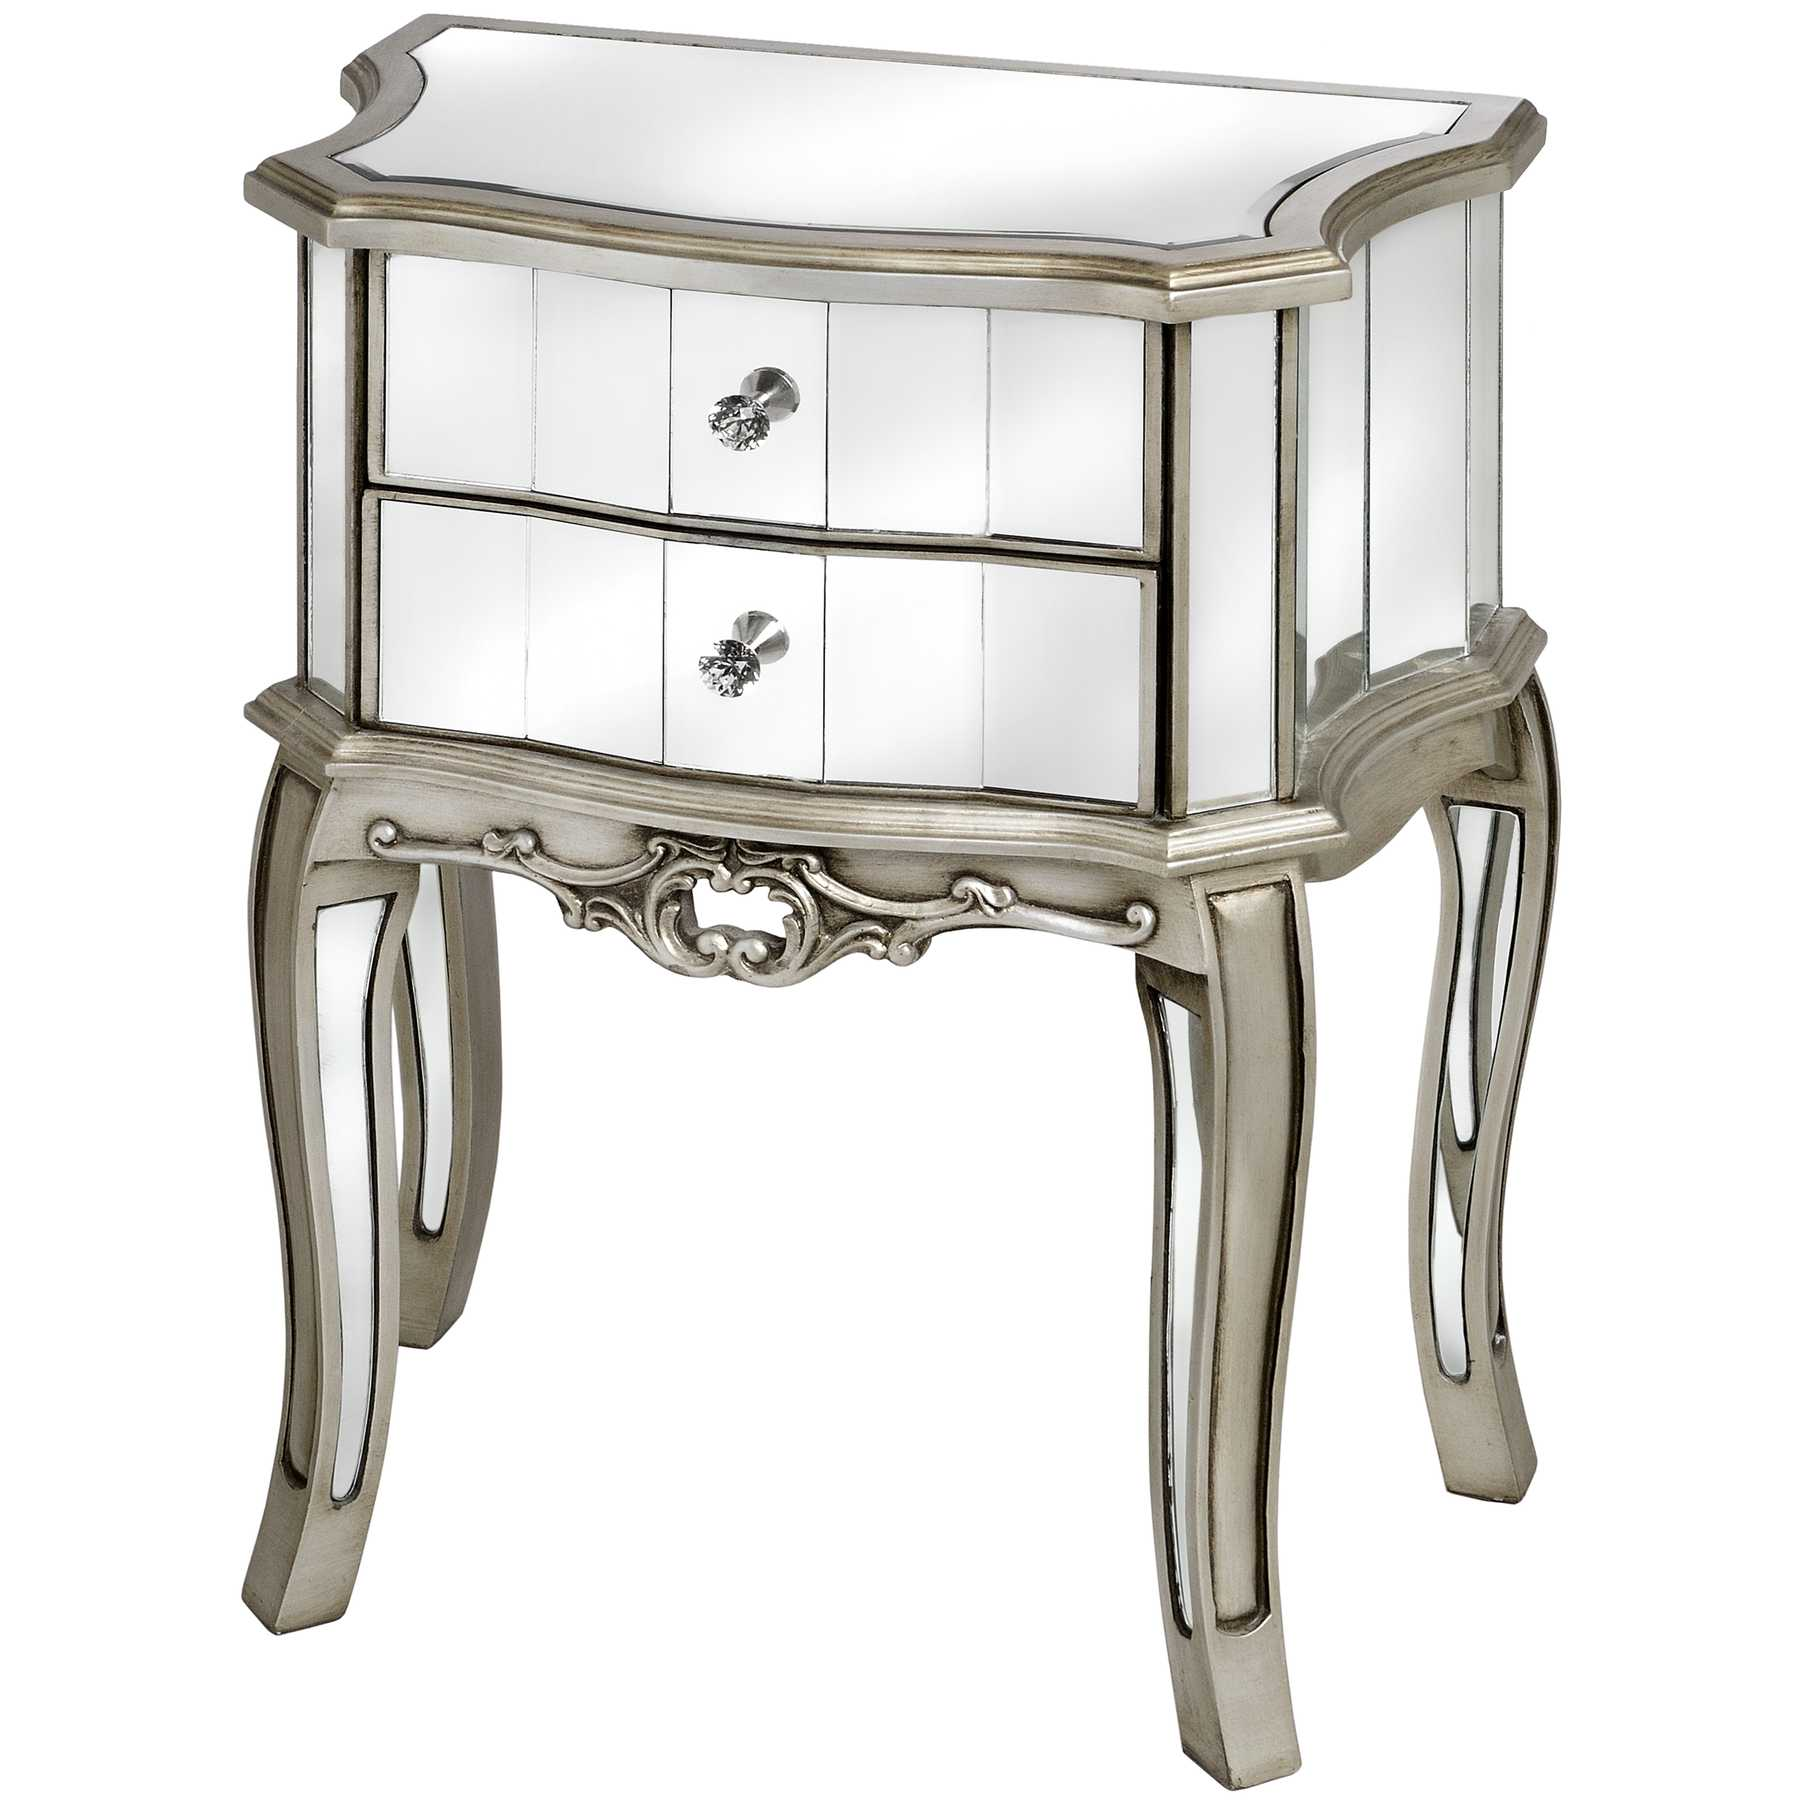 gold mirrored side table home design ideas curved top bedside with double mirror drawer and carved accent silver high legs interior idea espresso nightstand modern nightstands